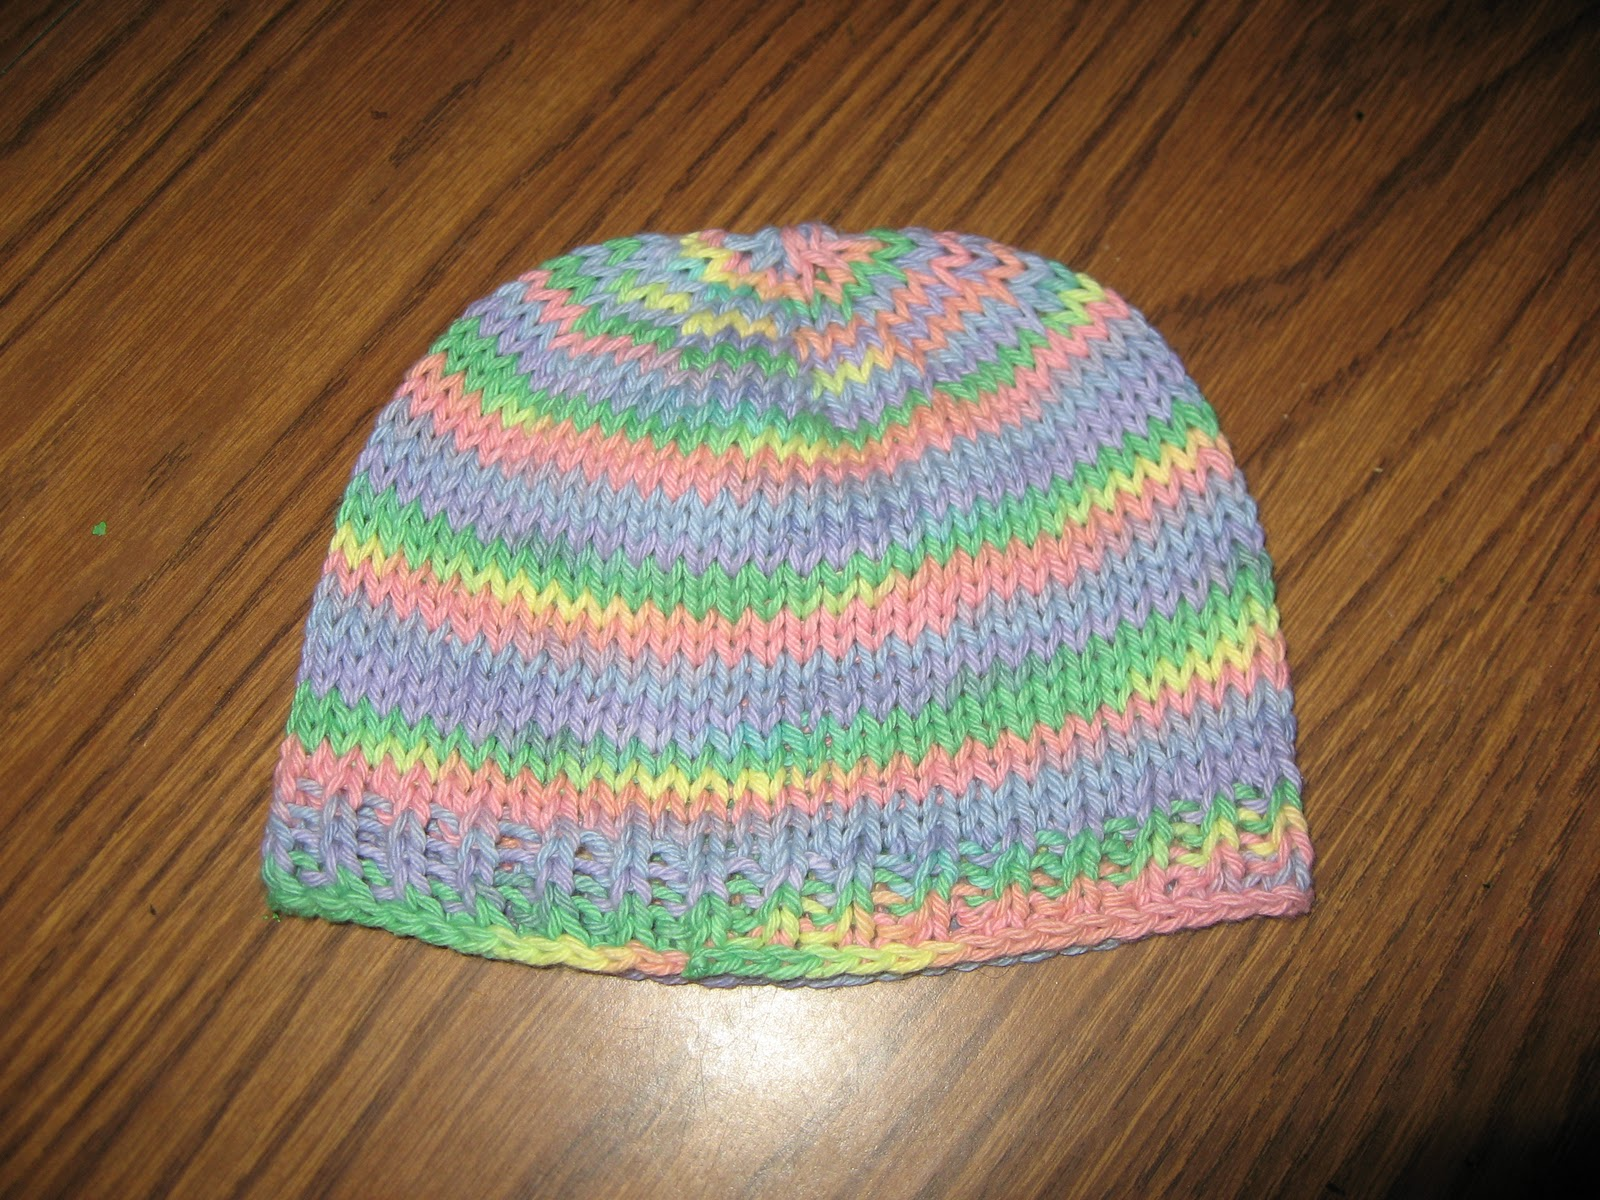 Knook Knitting Patterns : Id Rather Be Knooking: Knooked Hat Crown Down FREE PATTERN